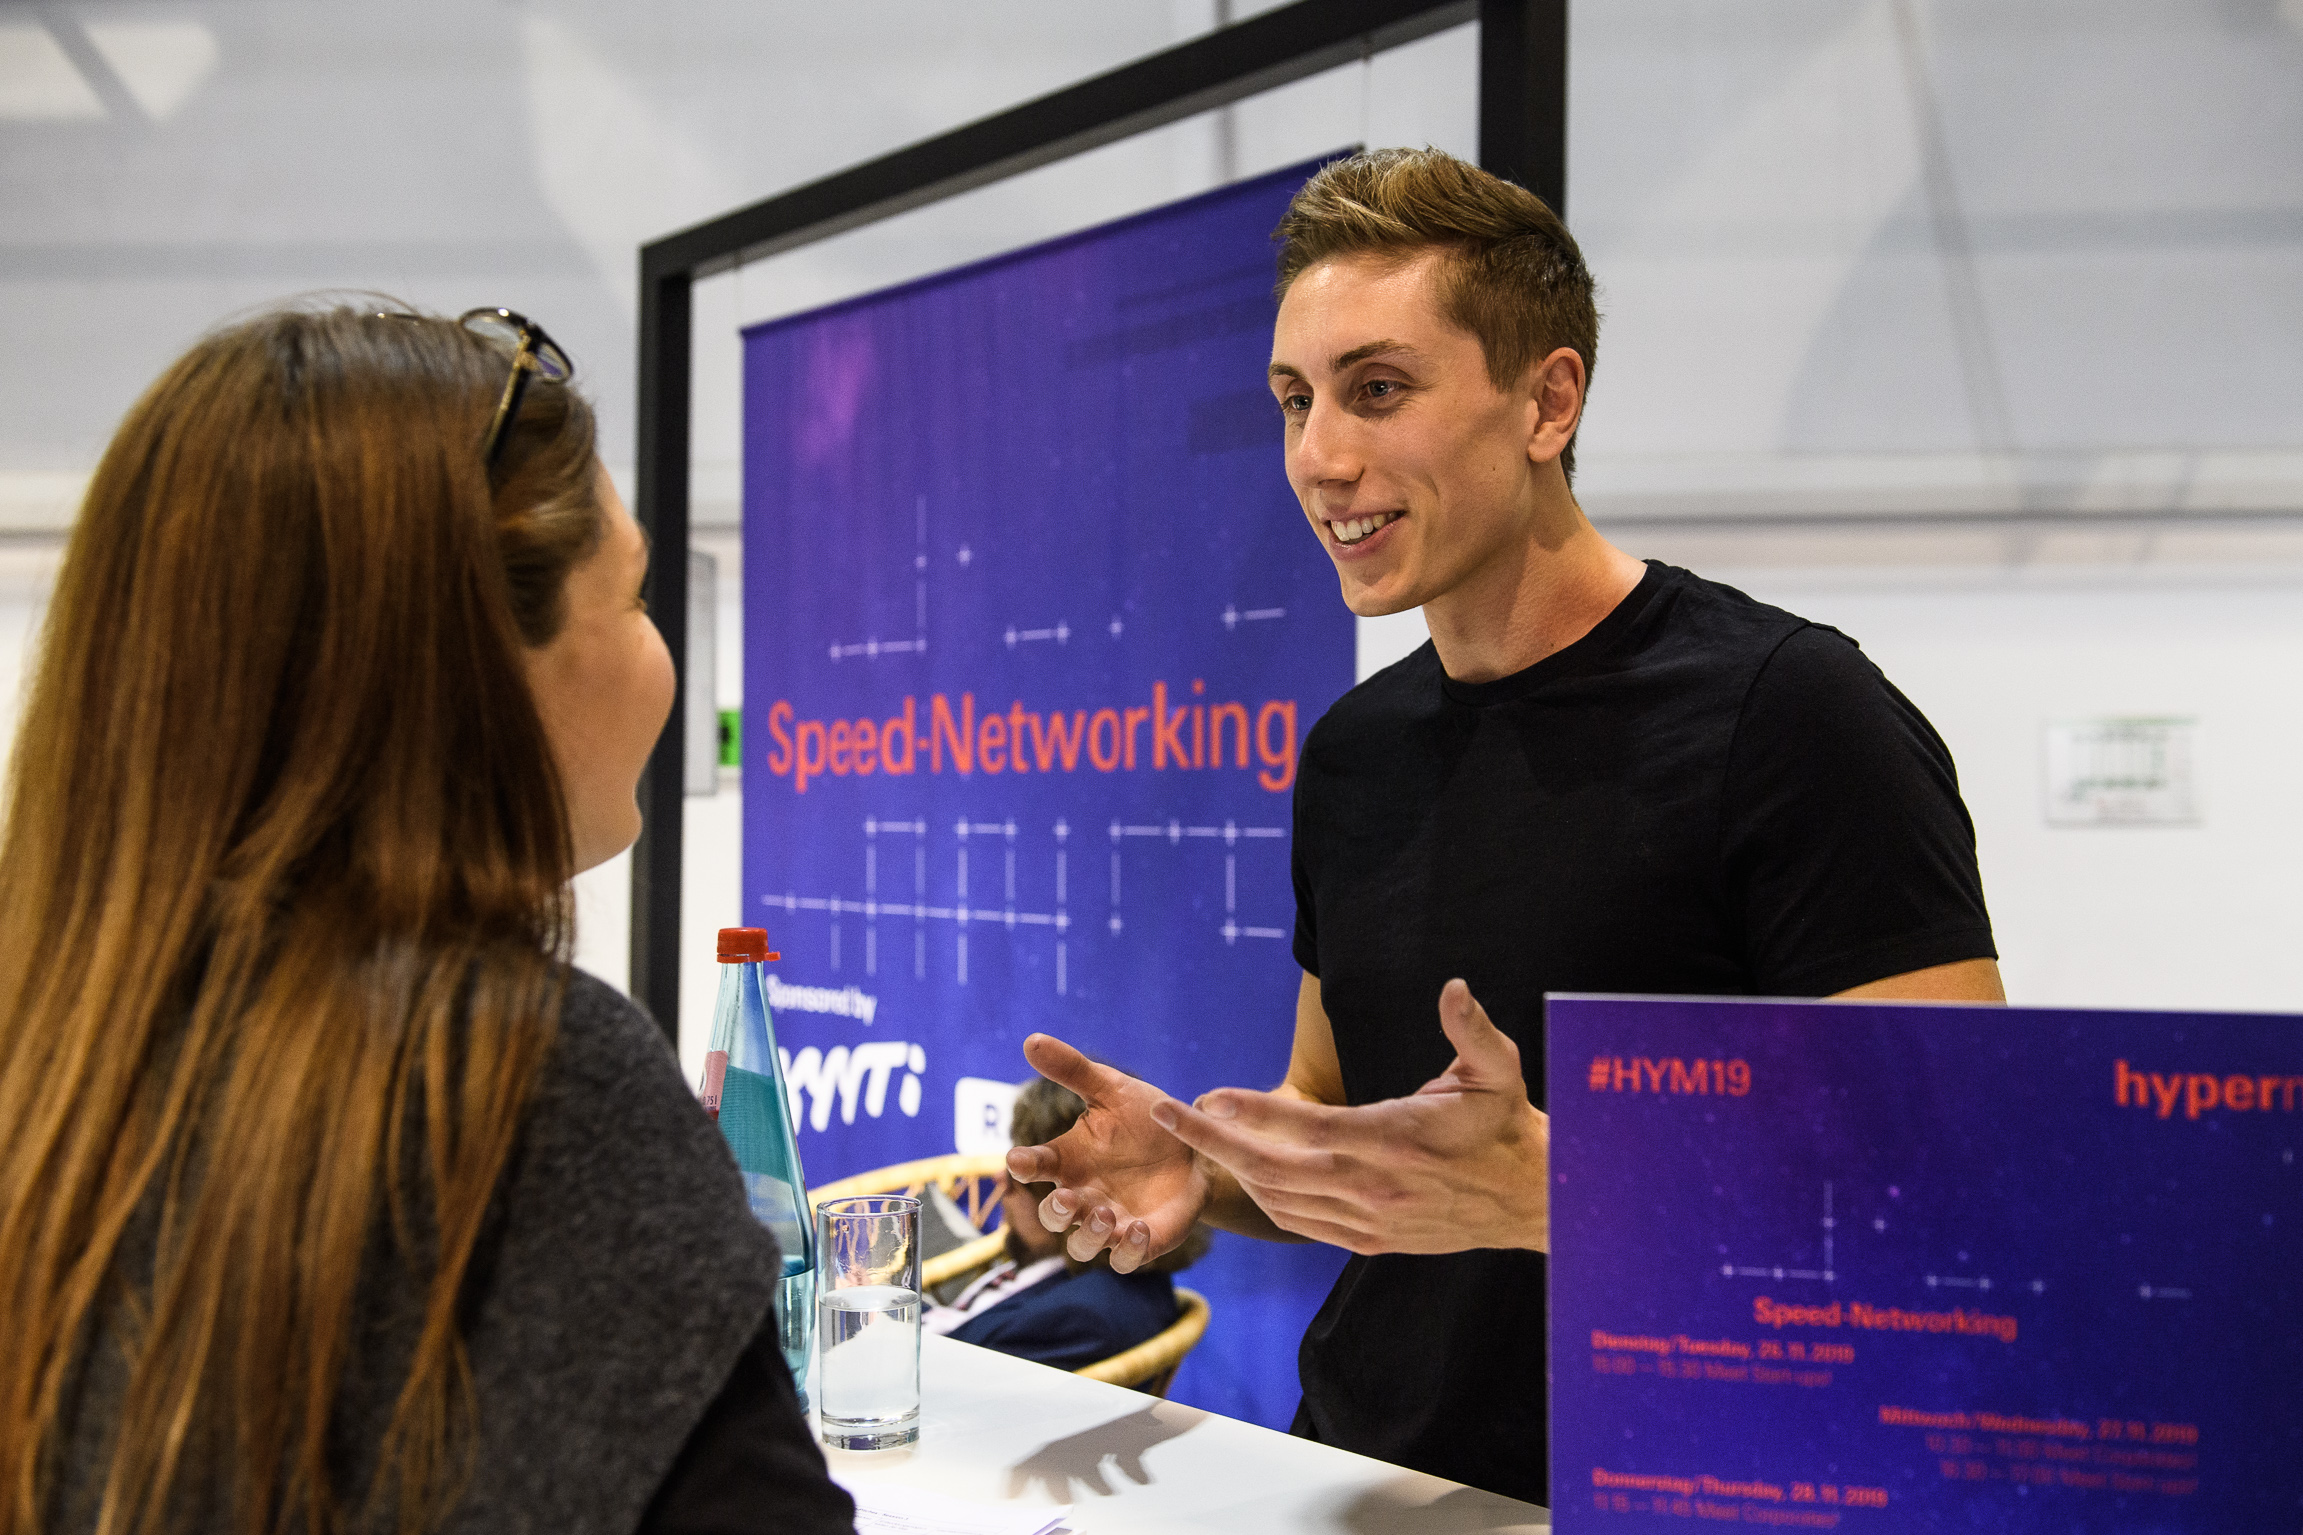 Speed-Networking, Meet Start-ups